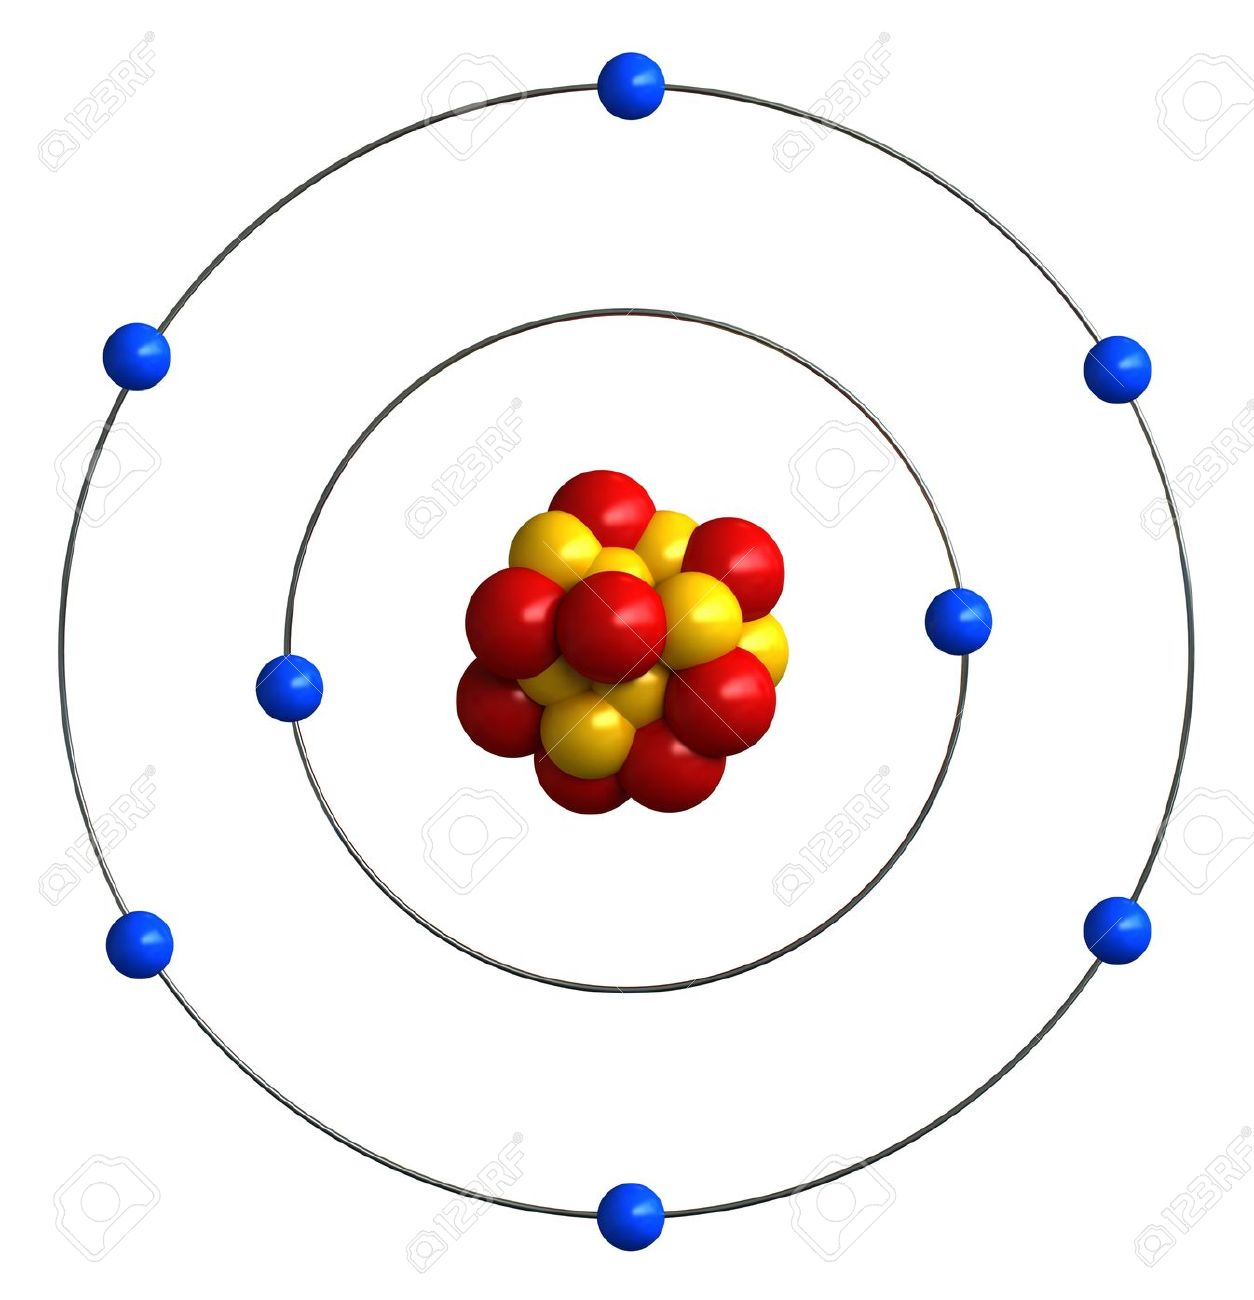 hight resolution of oxygen atom structure atom diagram stock photo wiring diagram data val 3d render of atomic structure